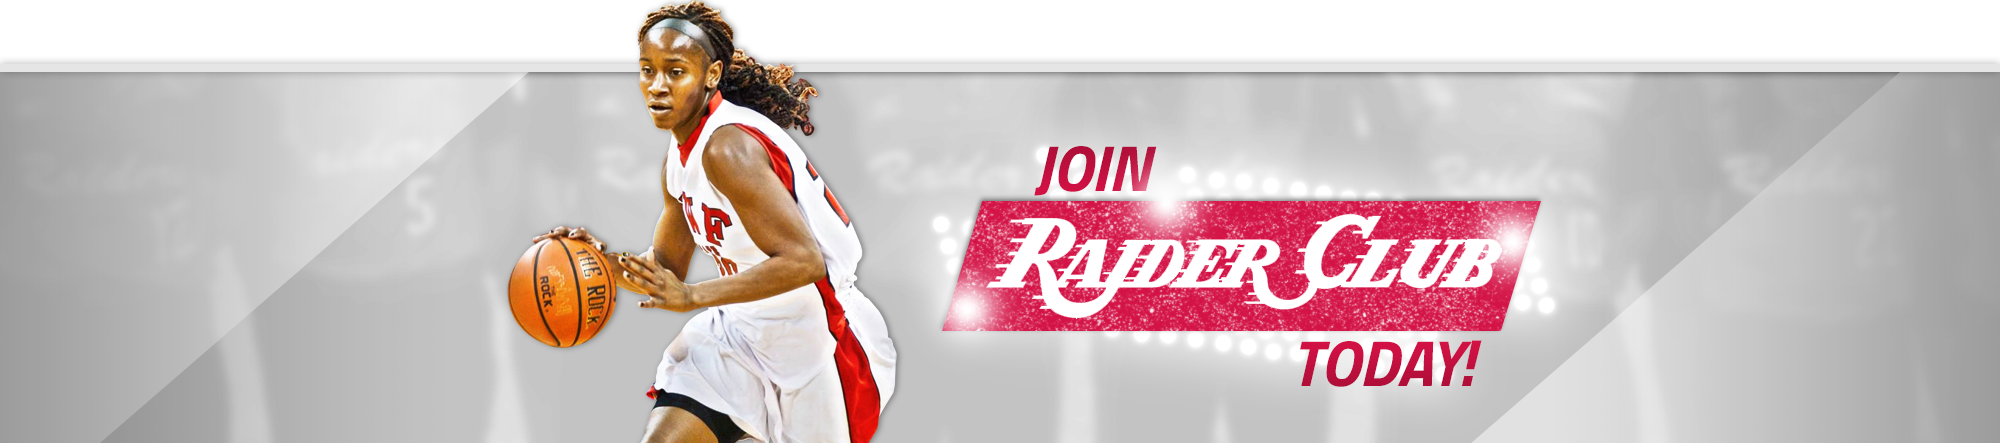 Join Raider Club Today!